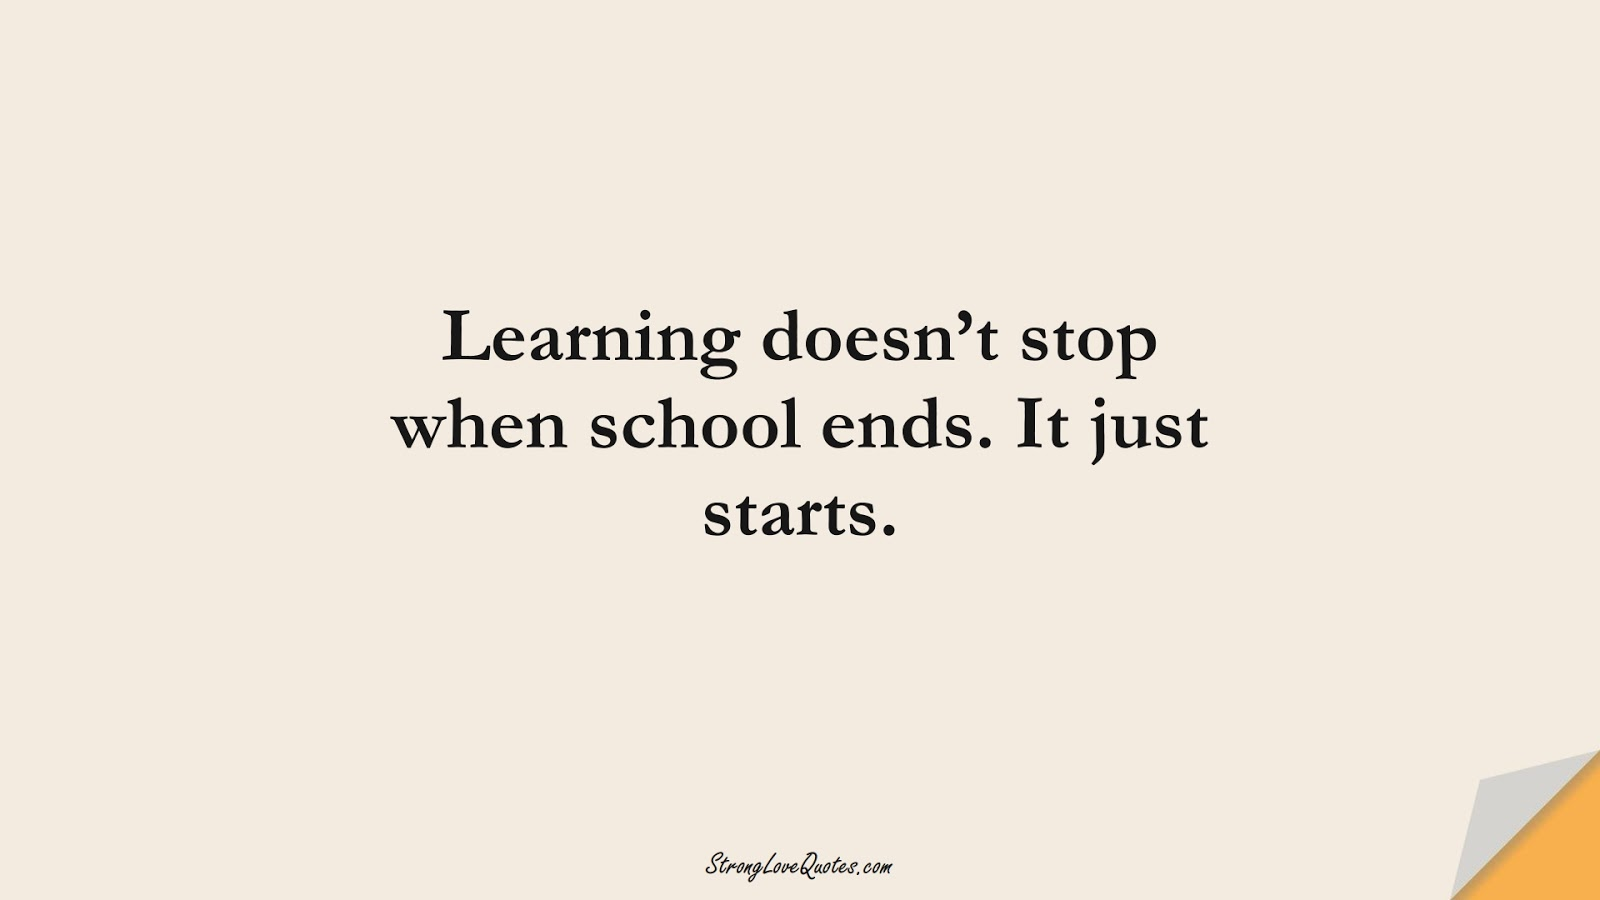 Learning doesn't stop when school ends. It just starts.FALSE